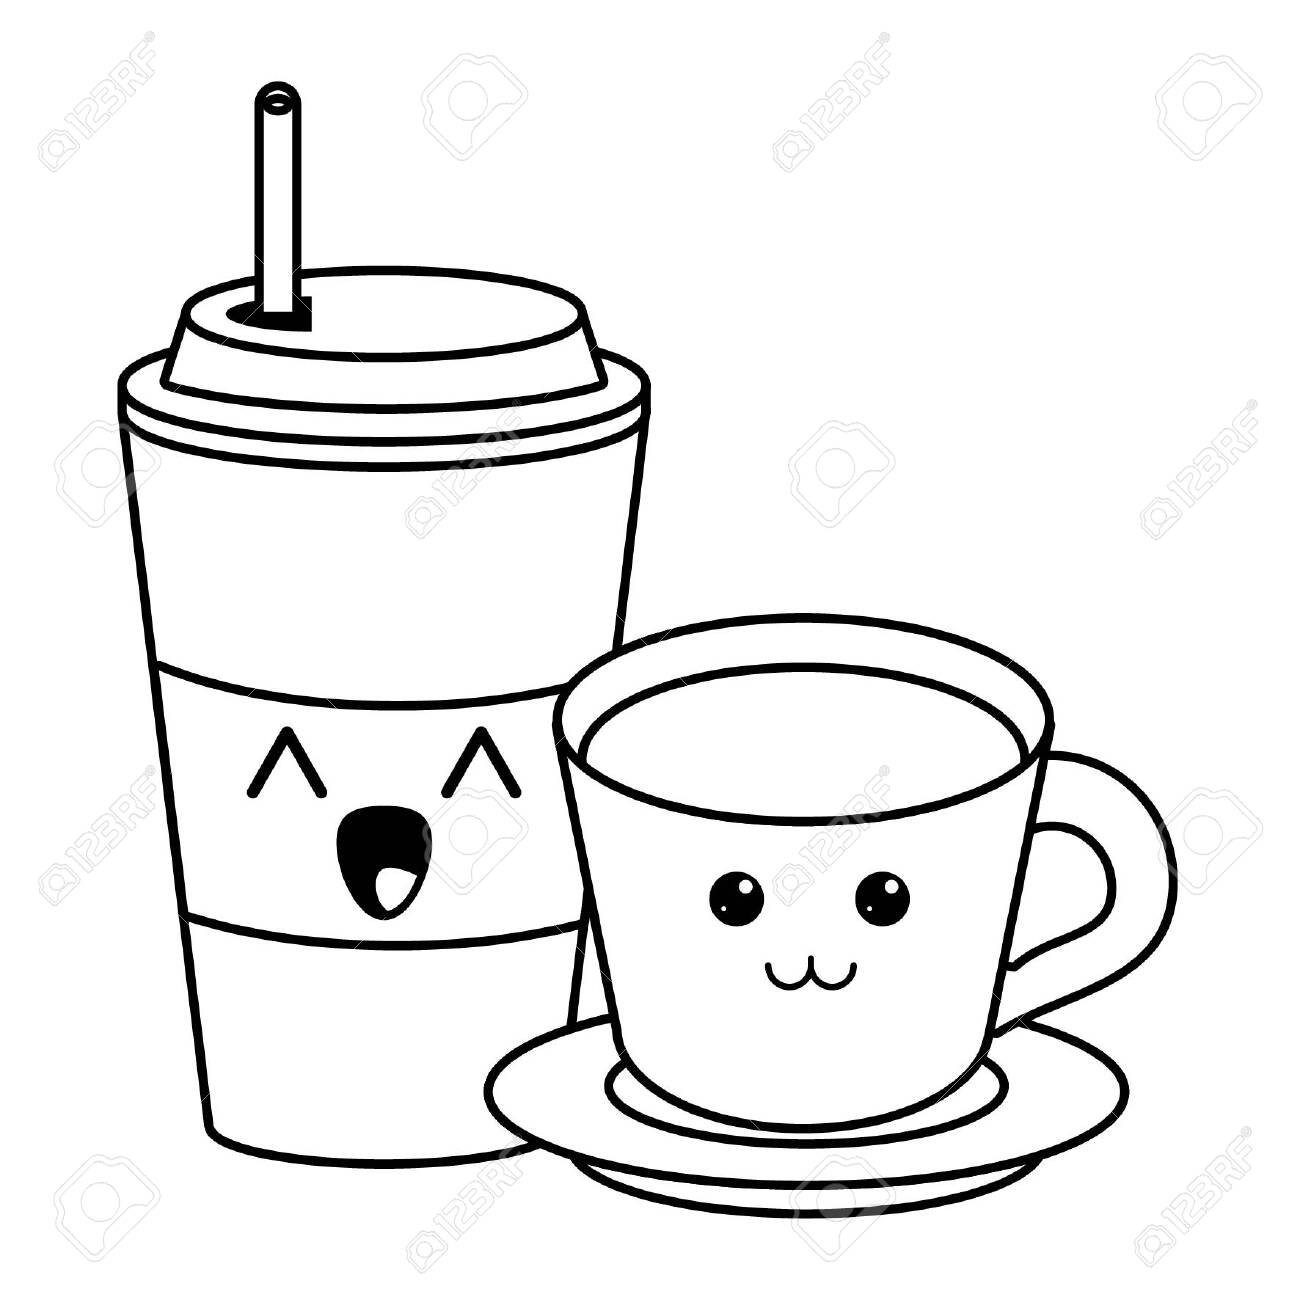 Ice Coffee Cup And Drink Hot Cute Kawaii Cartoon Vector Illustration Royalty Free Cliparts Vectors And Stock Illustration Image 124559000